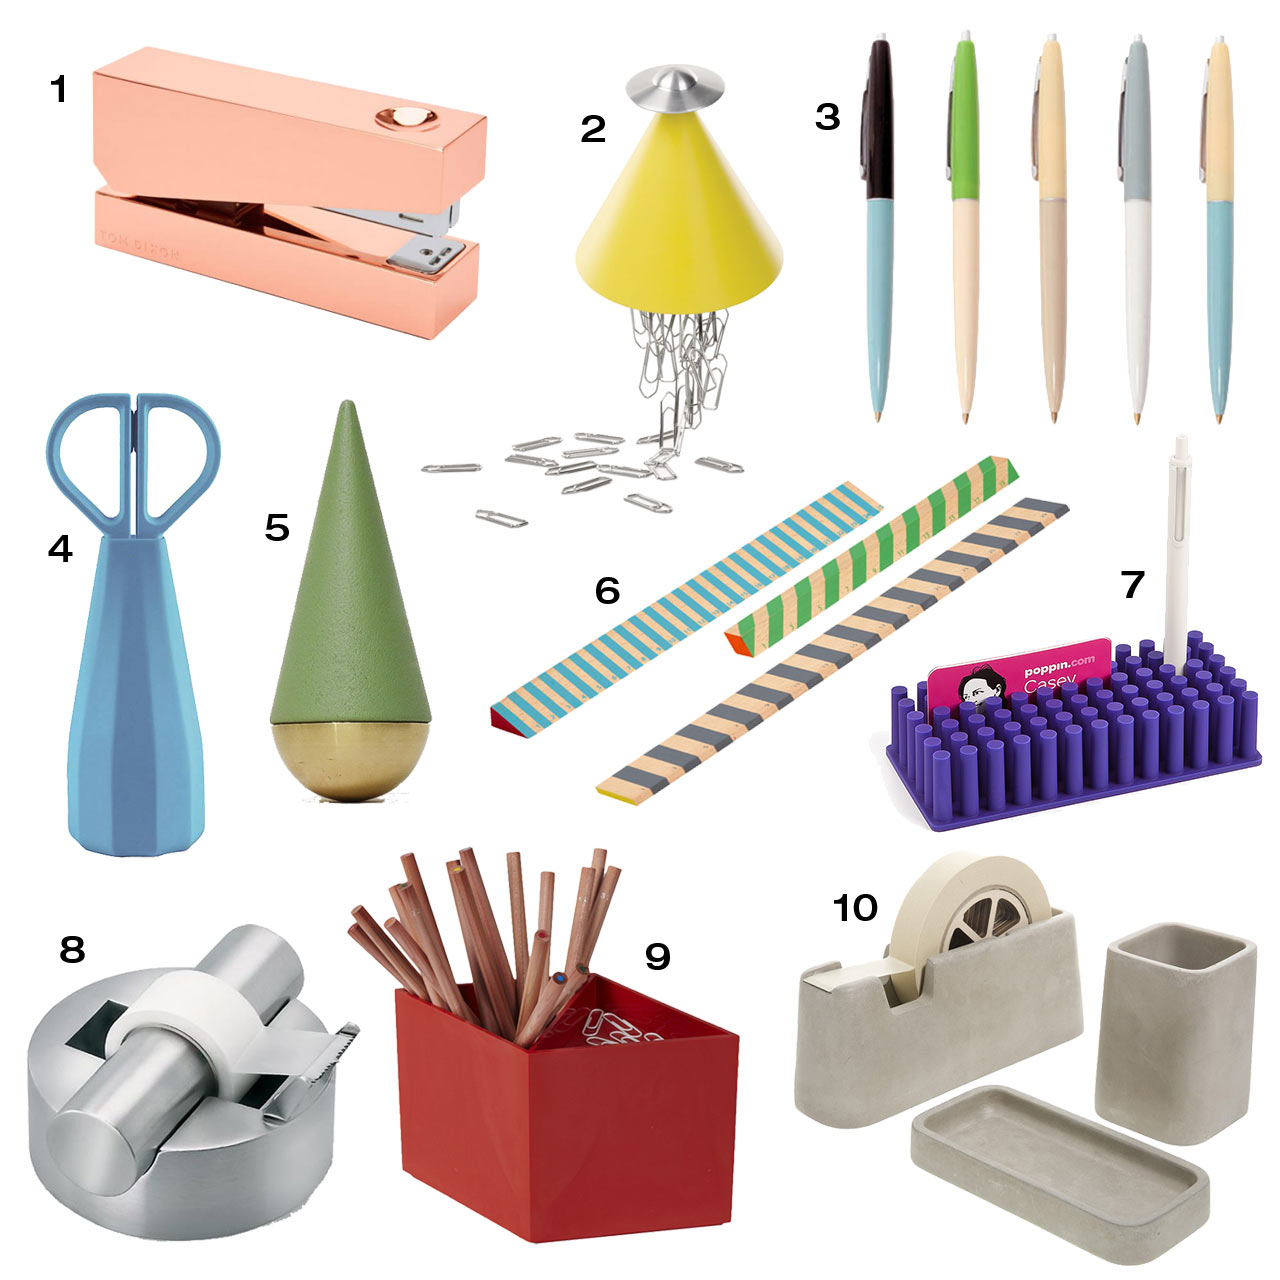 10 modern office supplies to up your desk game design milk for Modern design accessories